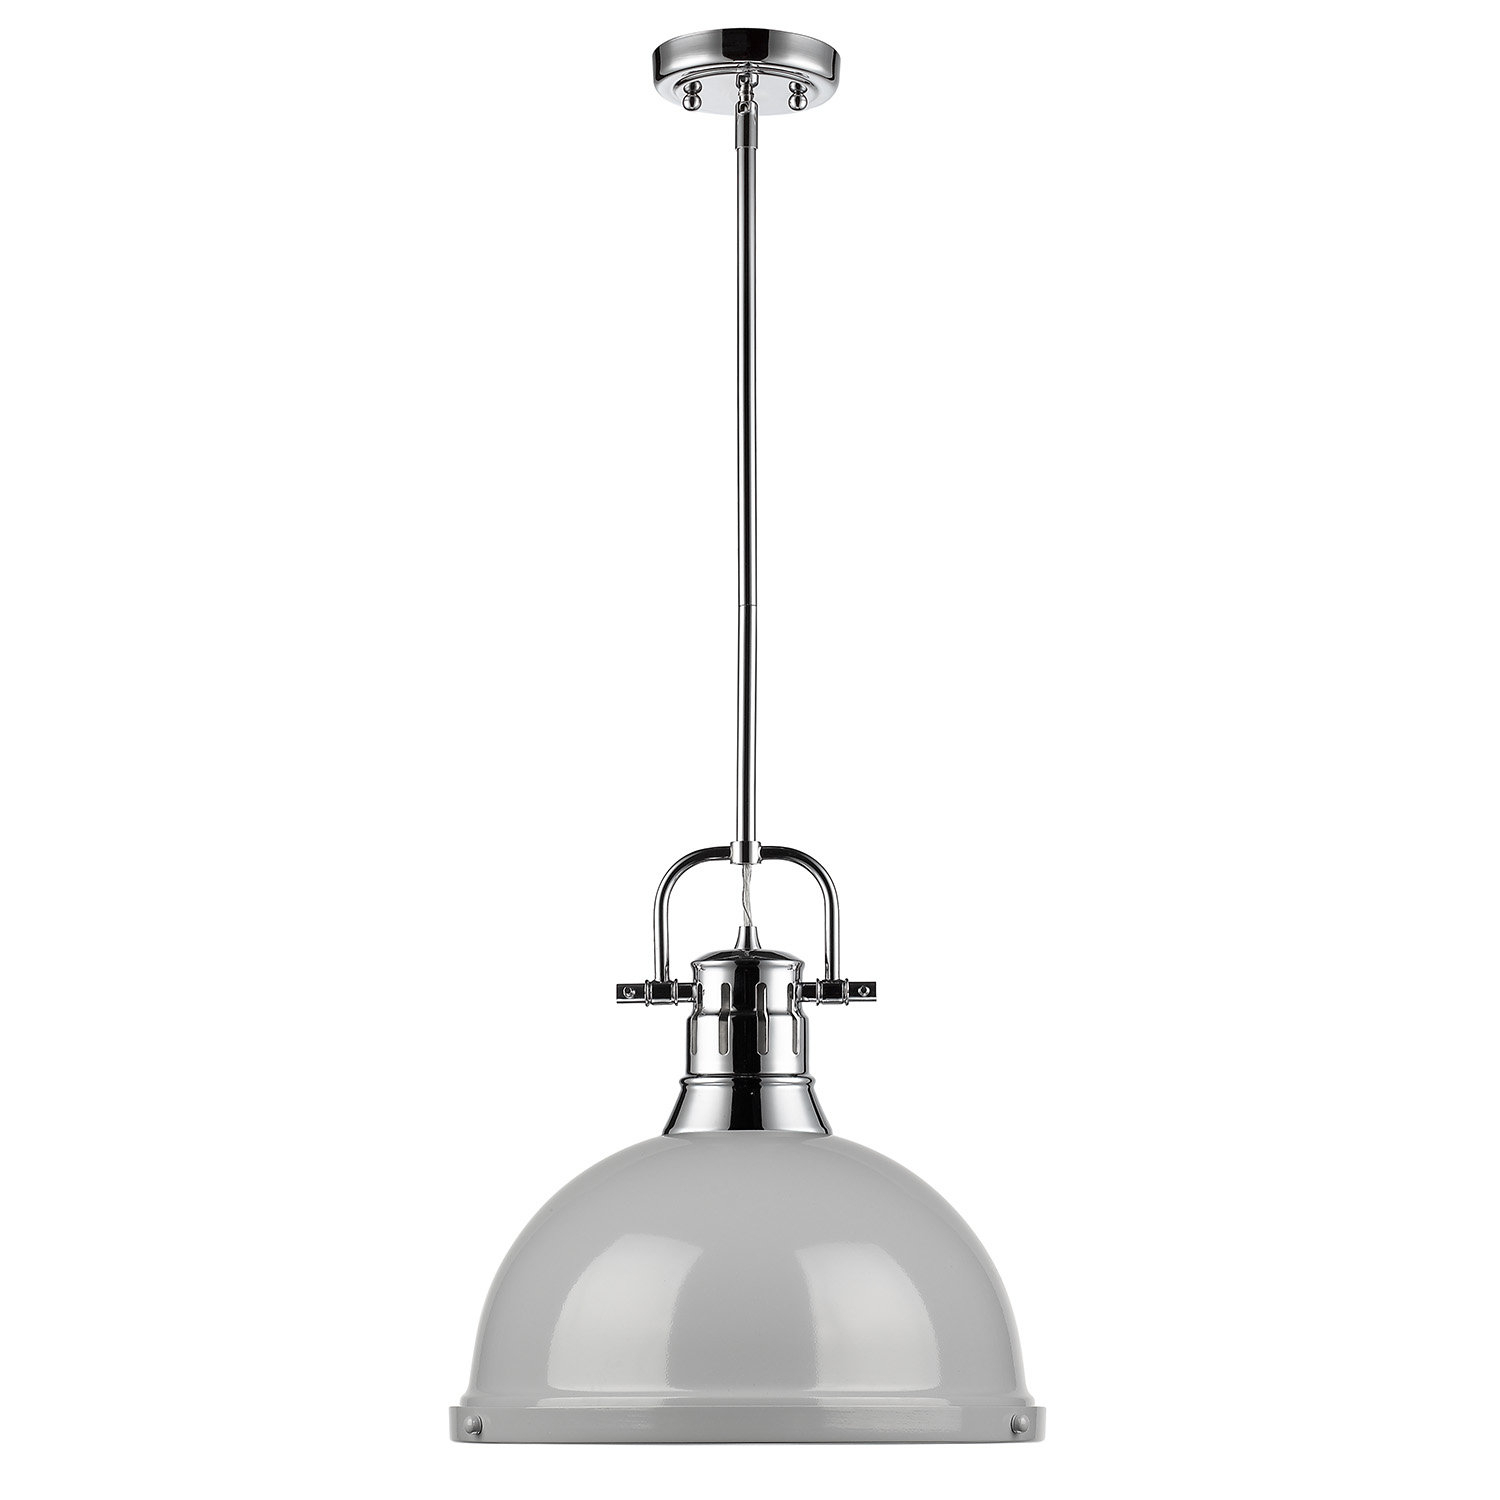 Bodalla 1 Light Single Dome Pendant With Regard To Bodalla 1 Light Single Bell Pendants (View 7 of 30)